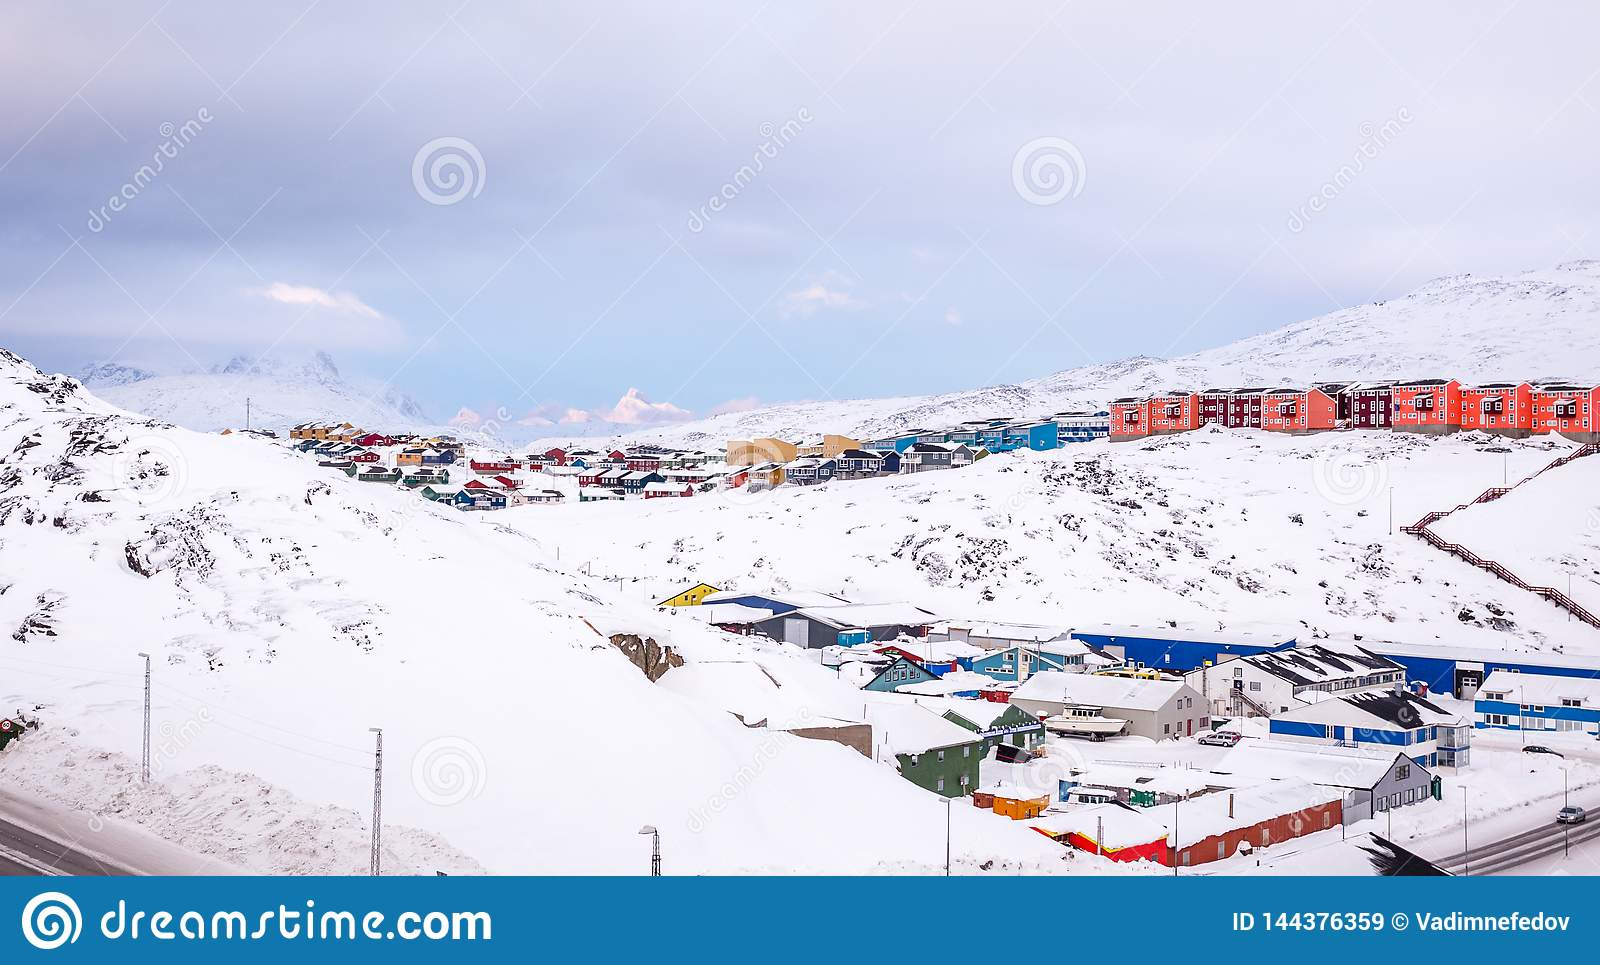 Colorful Inuit houses of Nuuk city with mountains in the background, Greenland